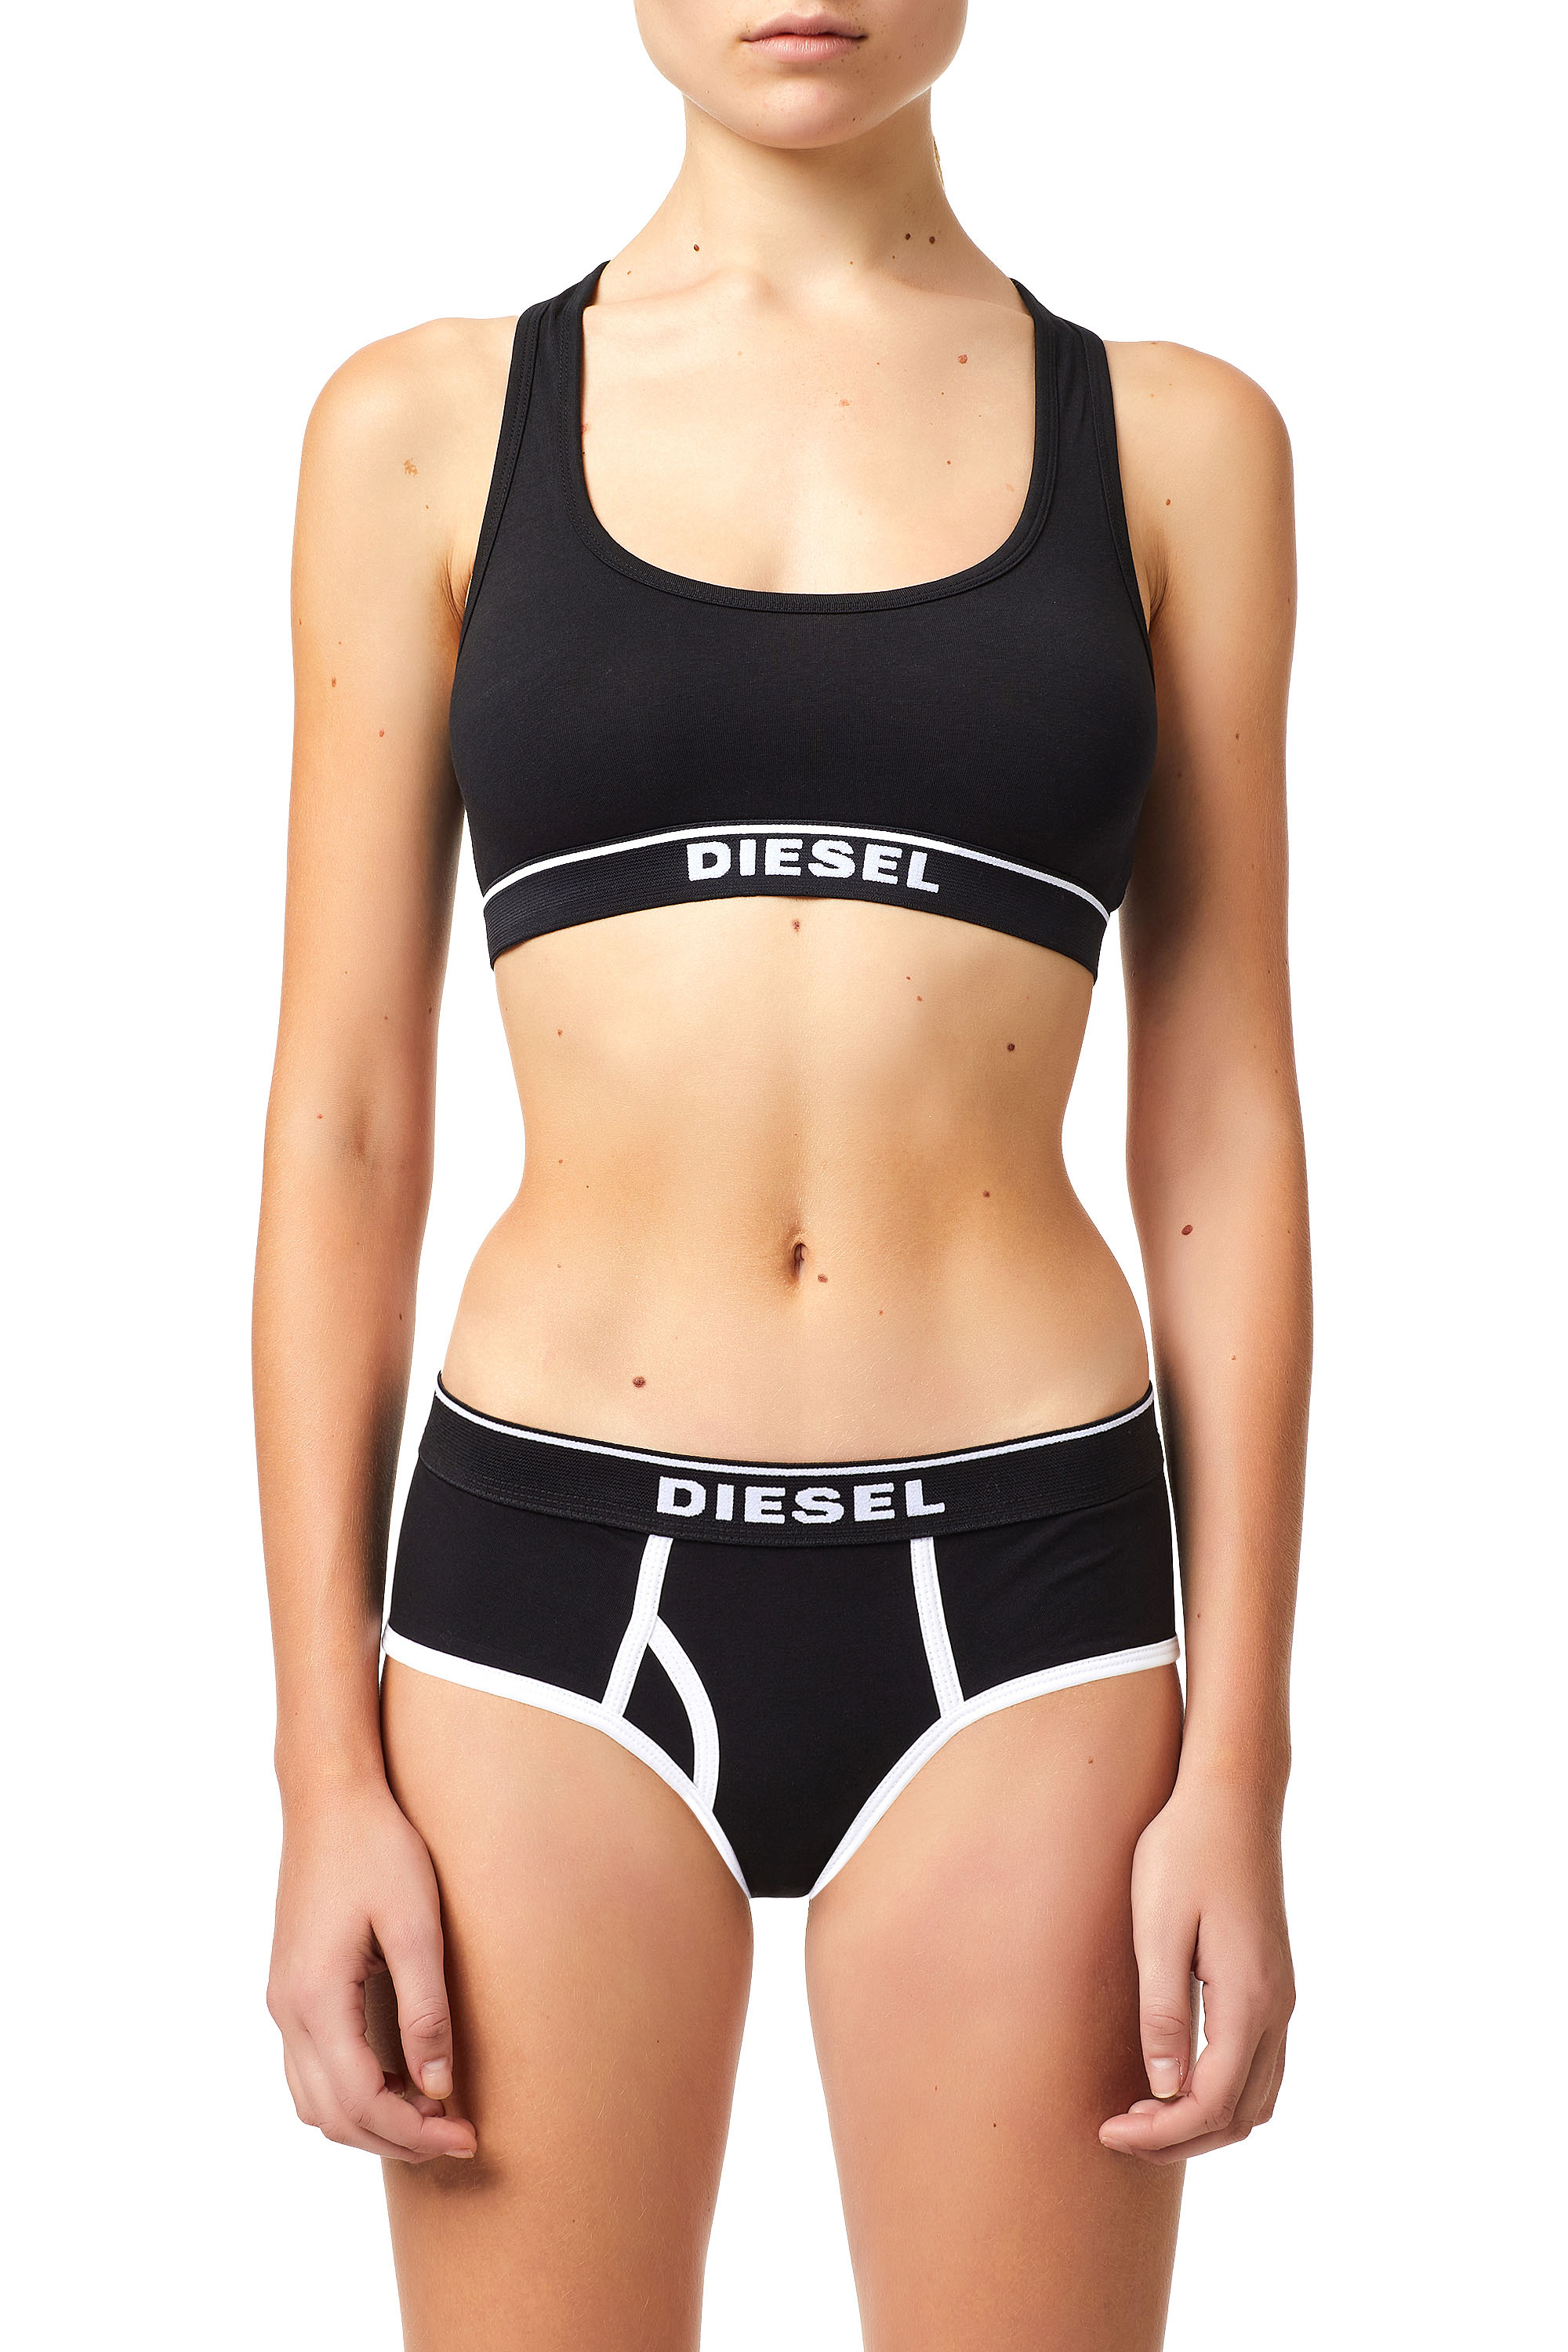 Diesel - UFPN-OXY-THREEPACK,  - Shorty - Image 1